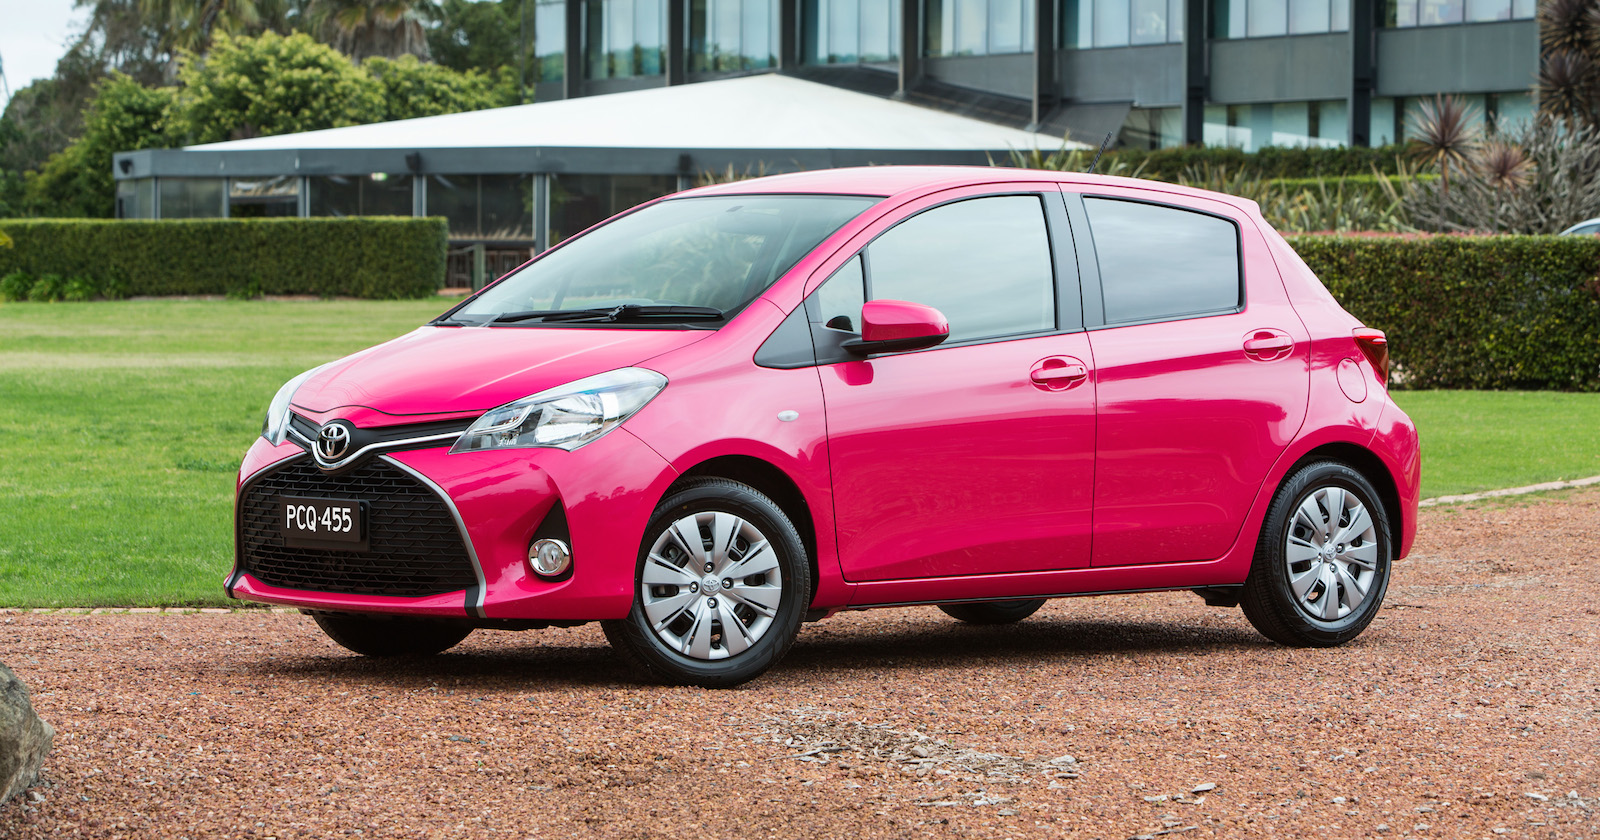 toyota yaris trd specs all new camry 2017 pantip 2015 pricing and specifications photos 1